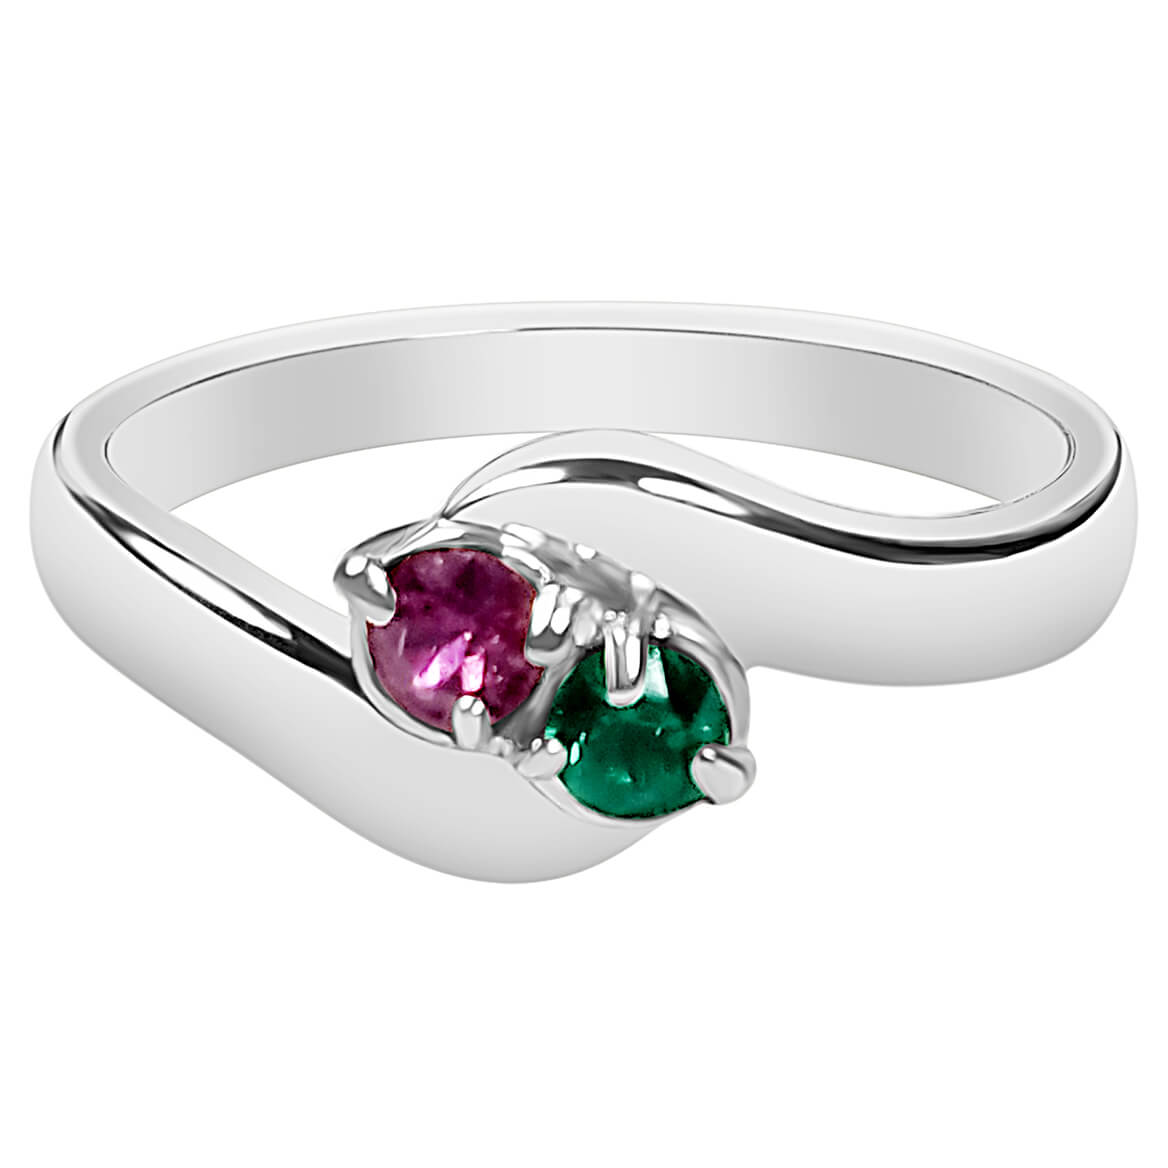 Birthstone Crystals Bypass Ring-362468